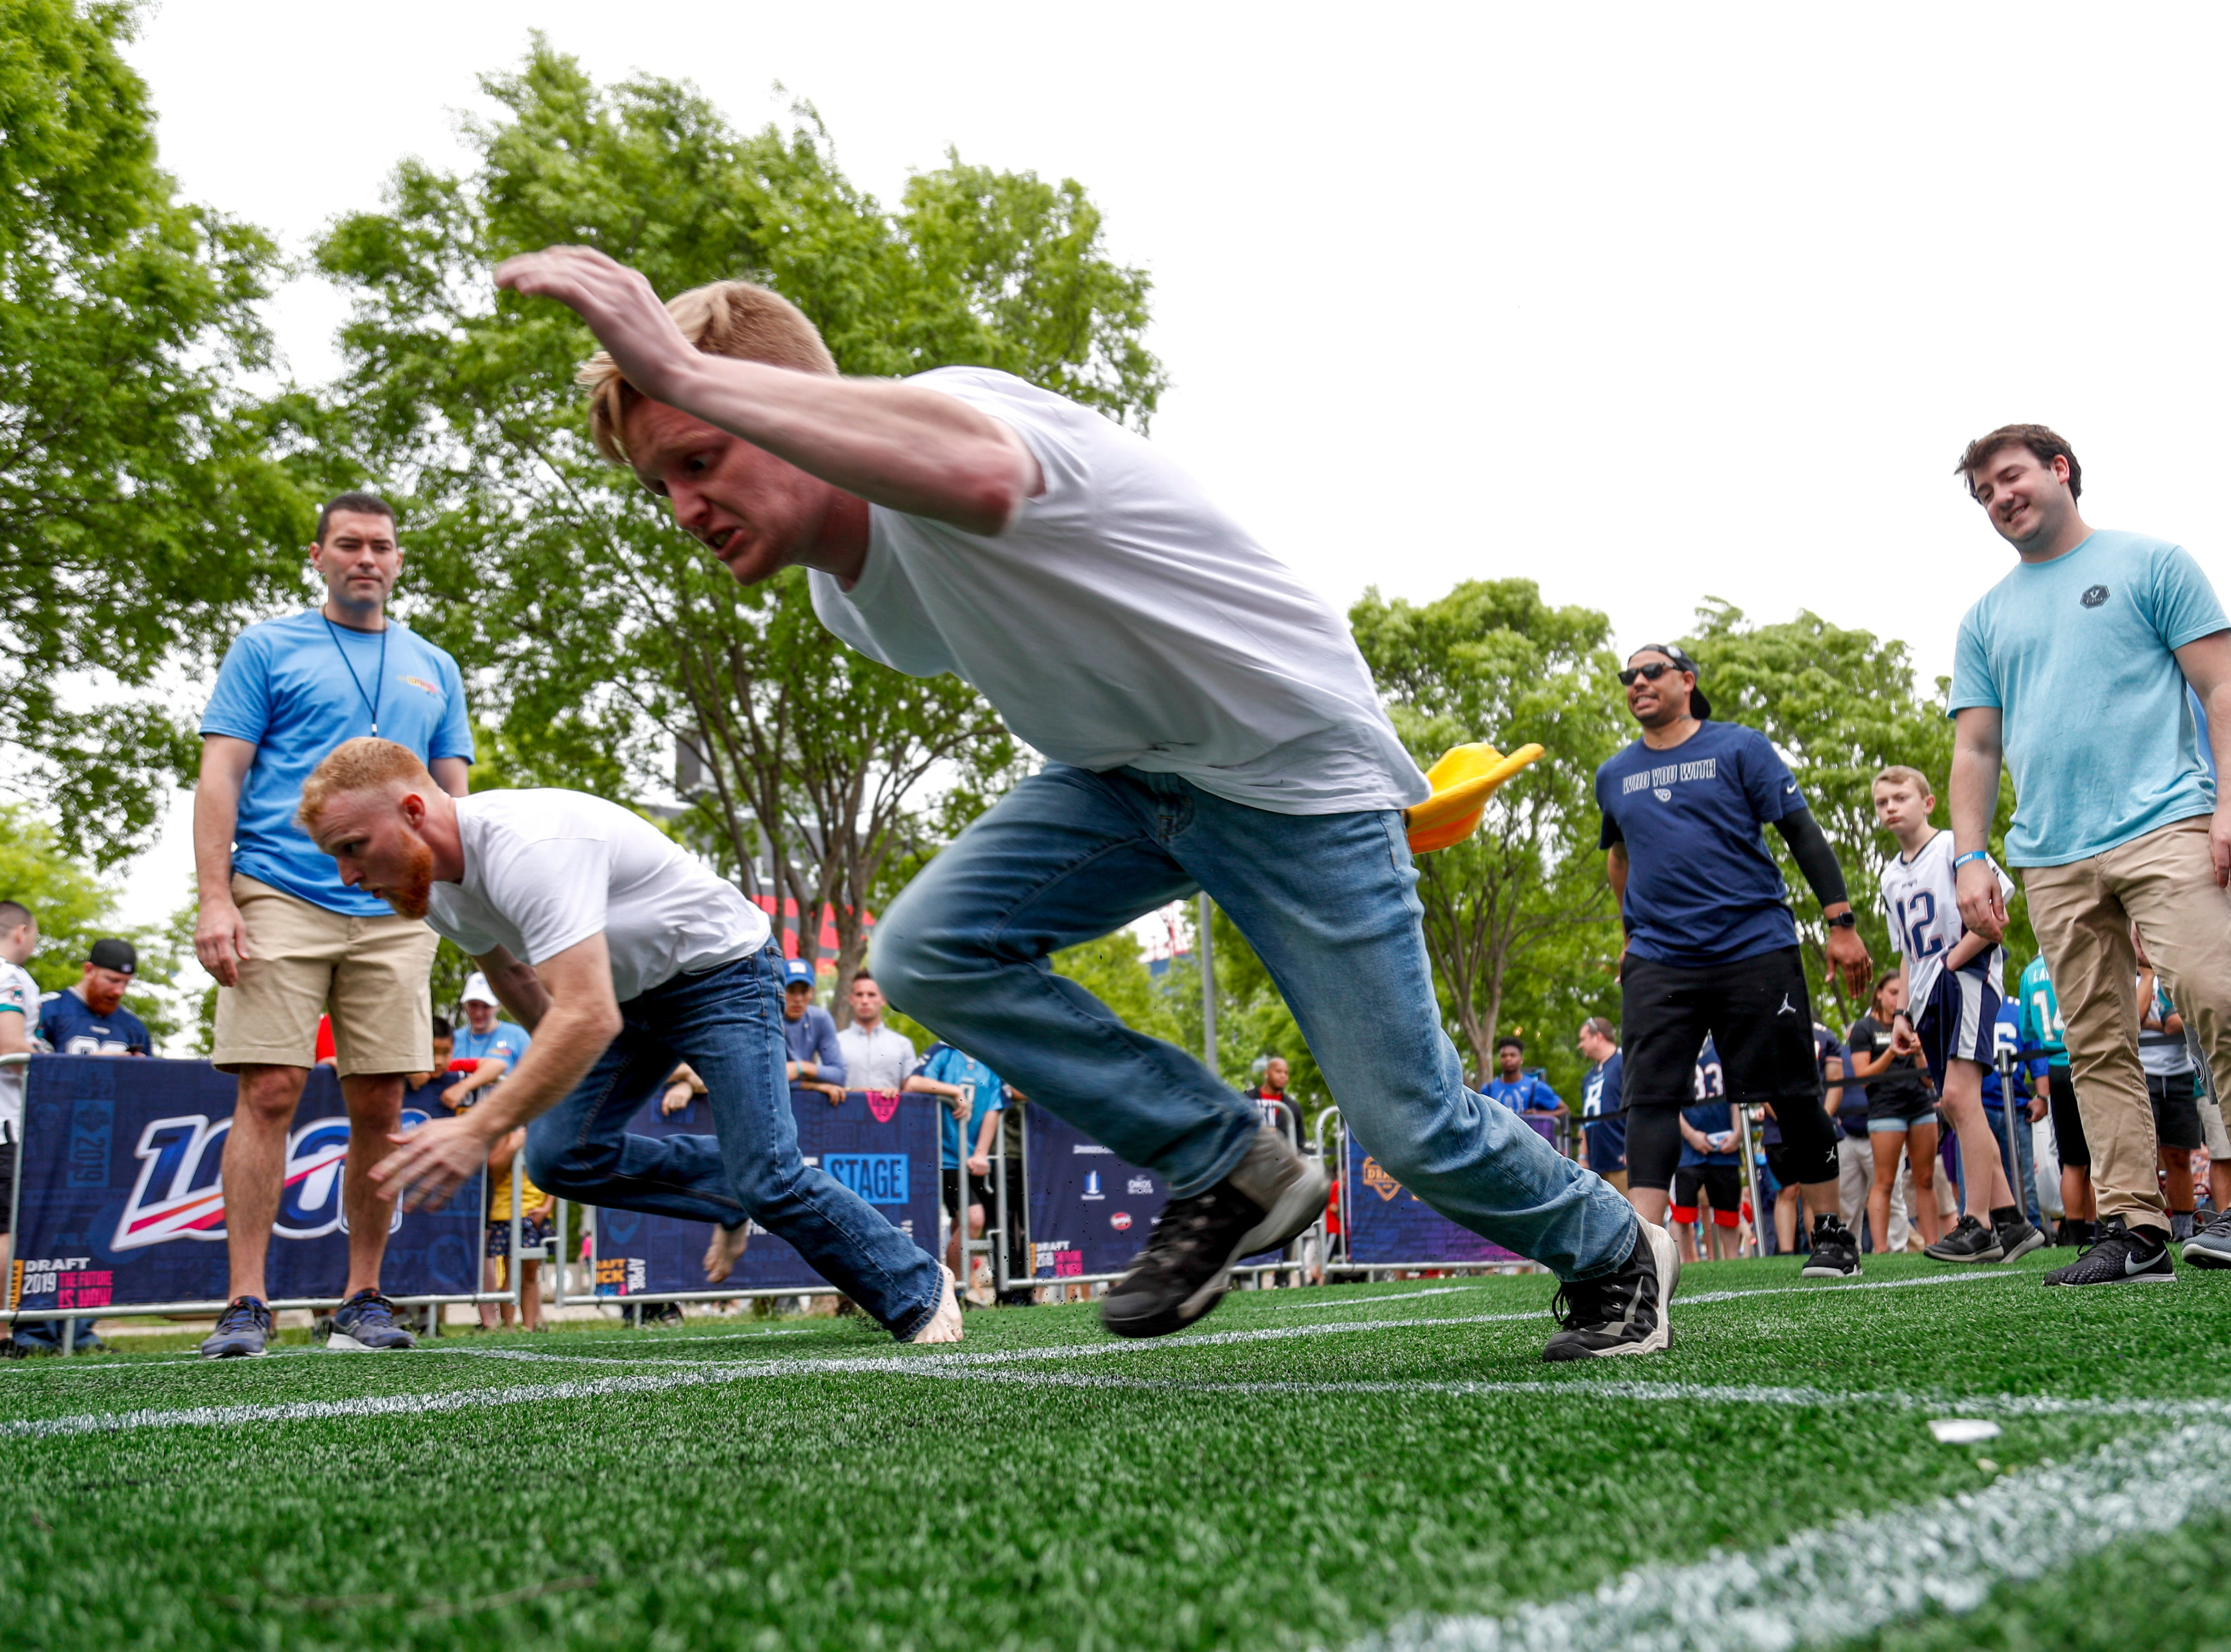 Fans charge from the starting line at the 40 yard dash during the NFL Draft Experience at Nissan Stadium in Nashville, Tenn., on Thursday, April 25, 2019.